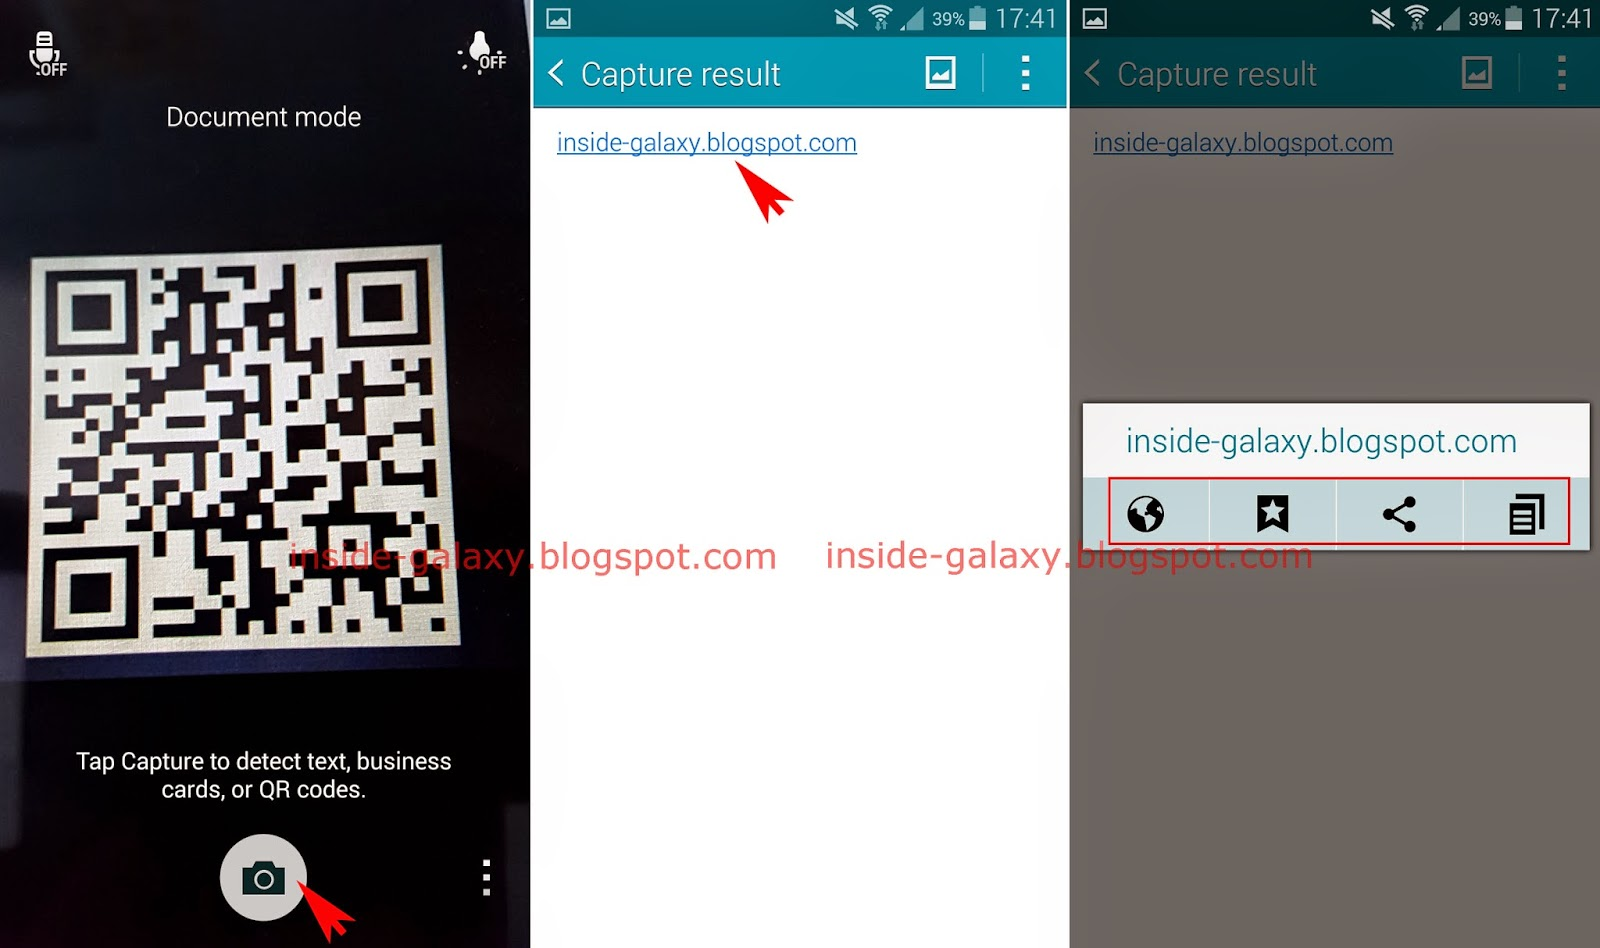 Samsung Galaxy S5: How to Scan QR Code in Android 4 4 2 Kitkat